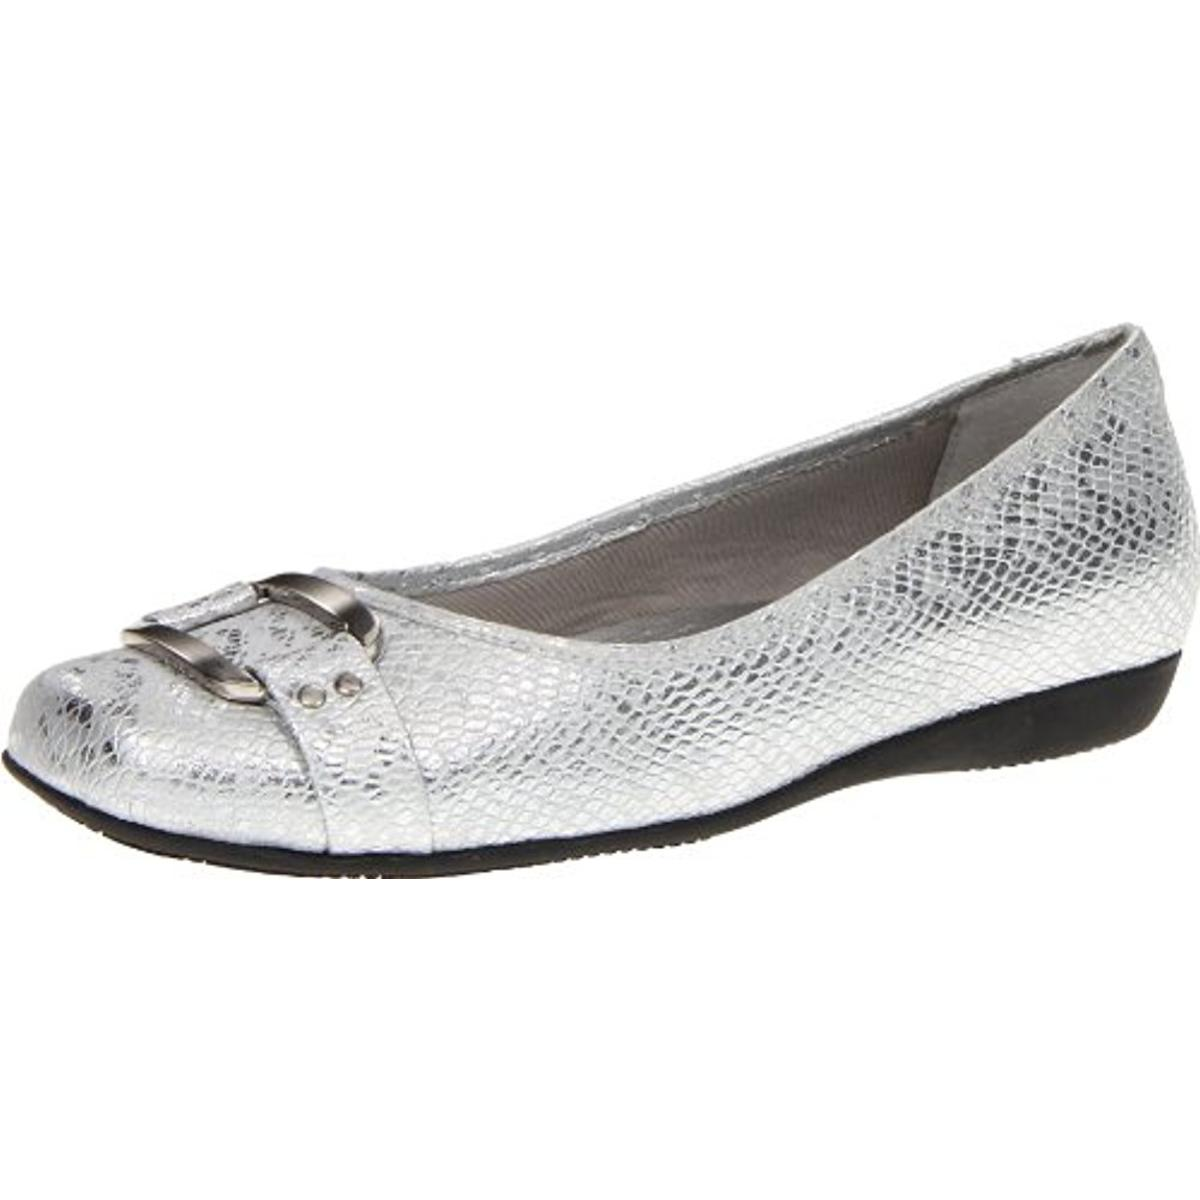 Trotters Womens Sizzle Signature Embellished Slip On Ballet Flats by Trotters